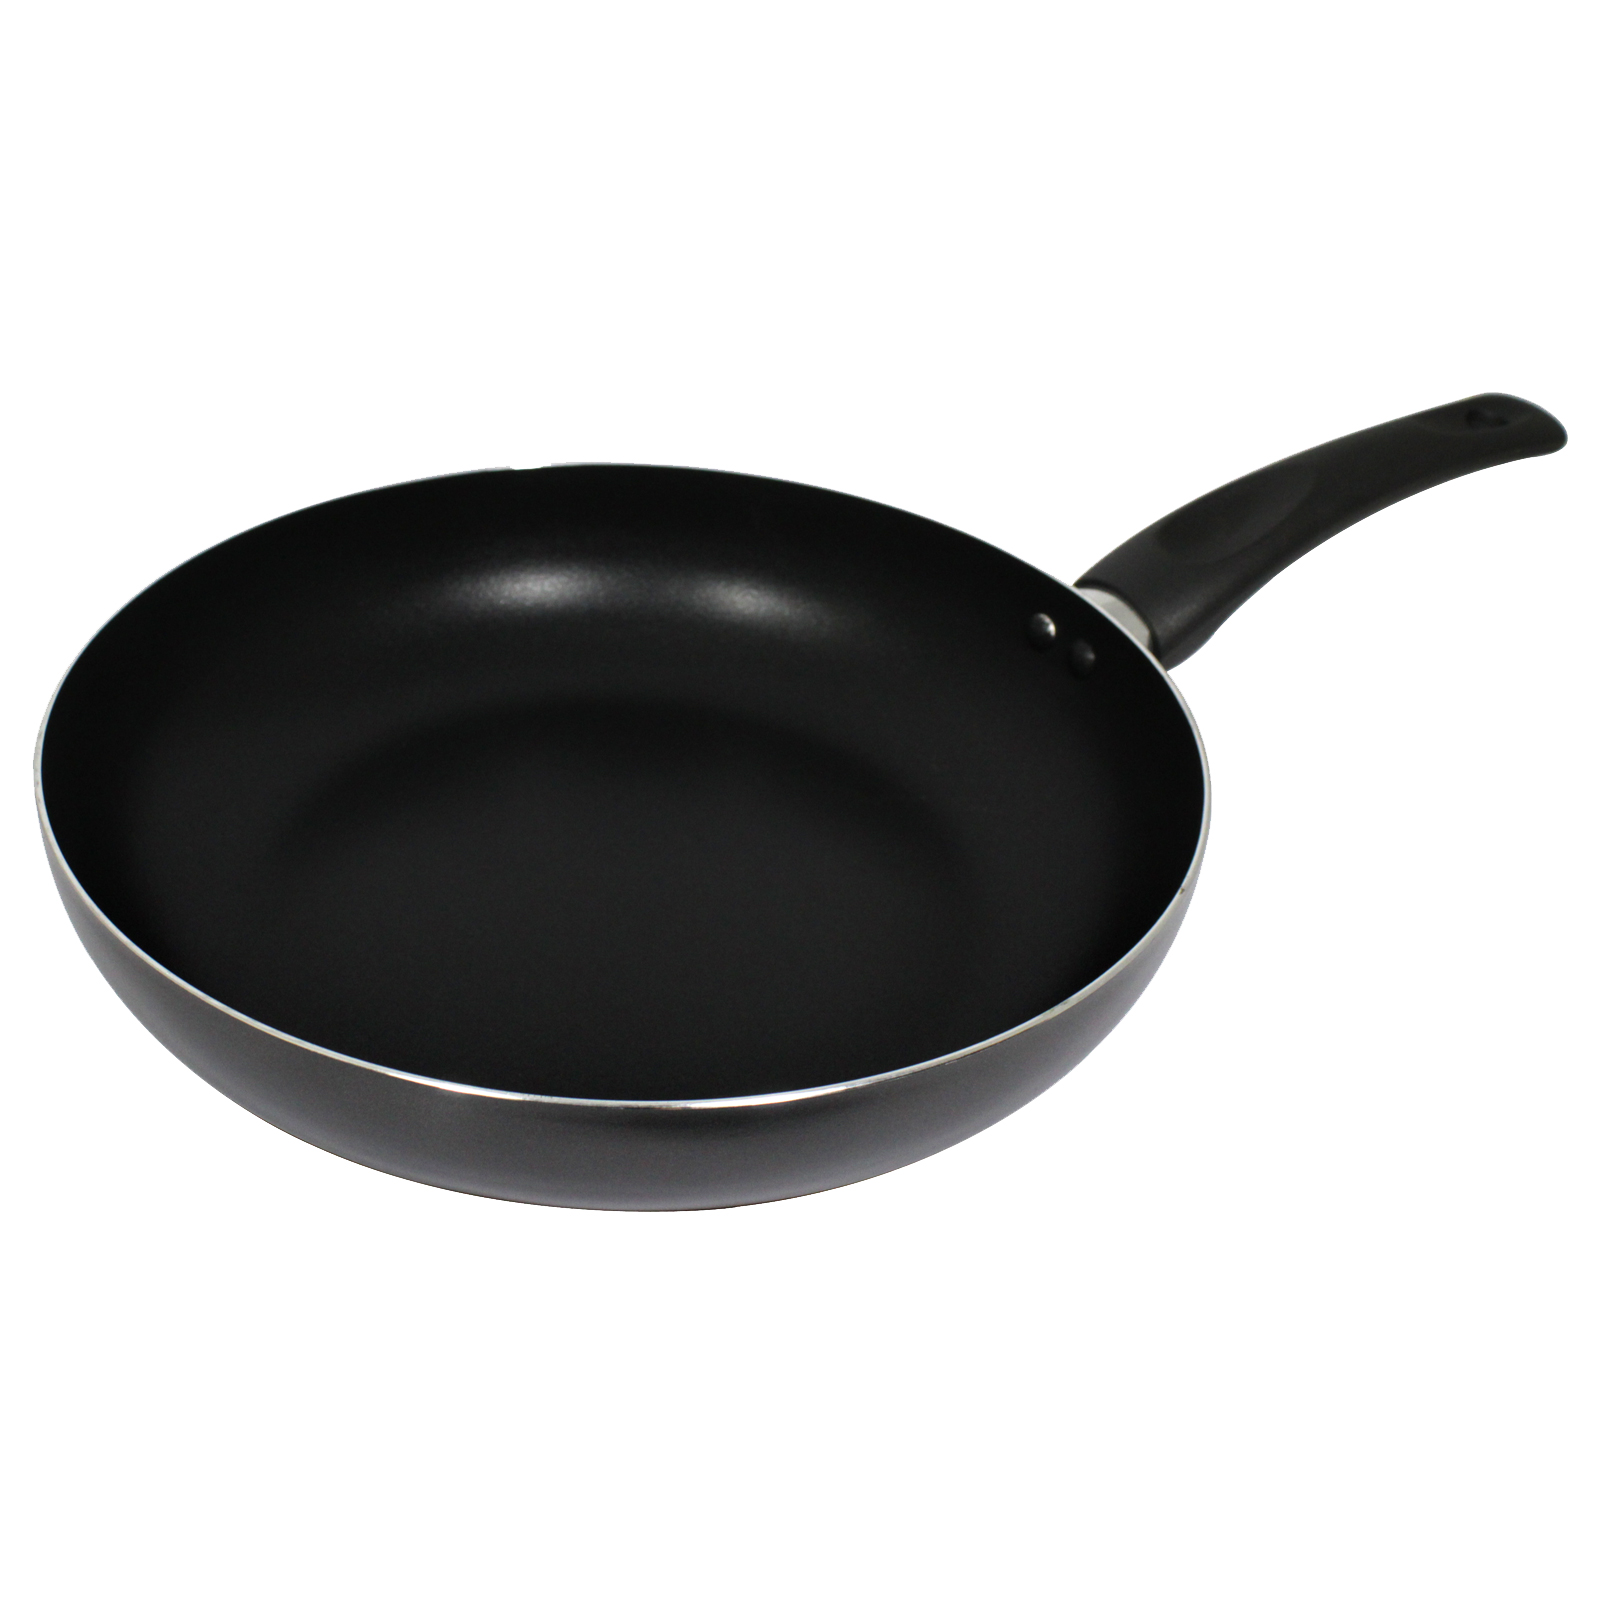 PENDEFORD SAPPHIRE 11 NON-STICK FRYING PAN